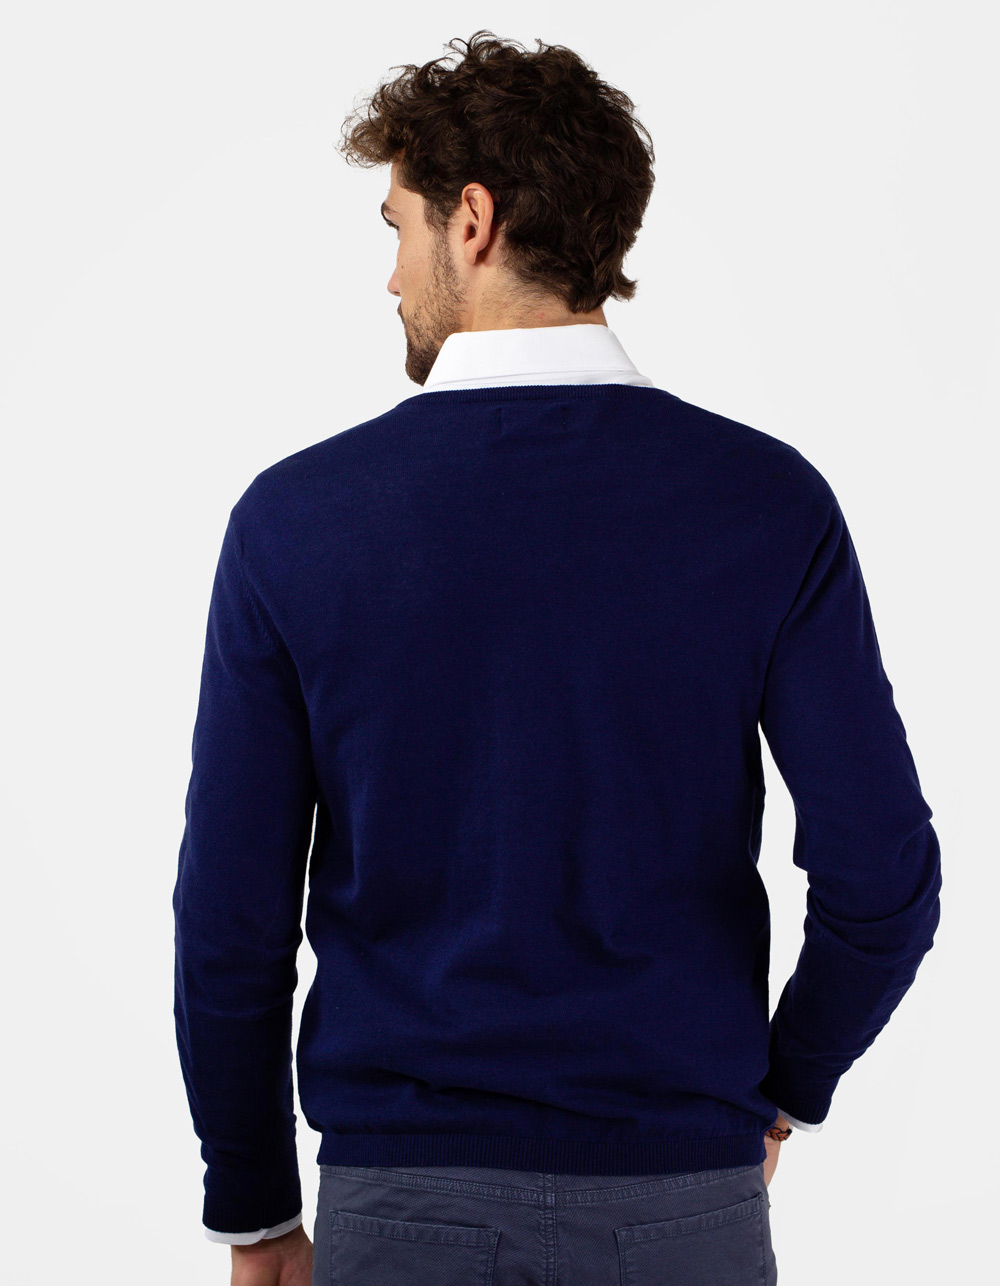 Jersey de cuello pico azul - Backside